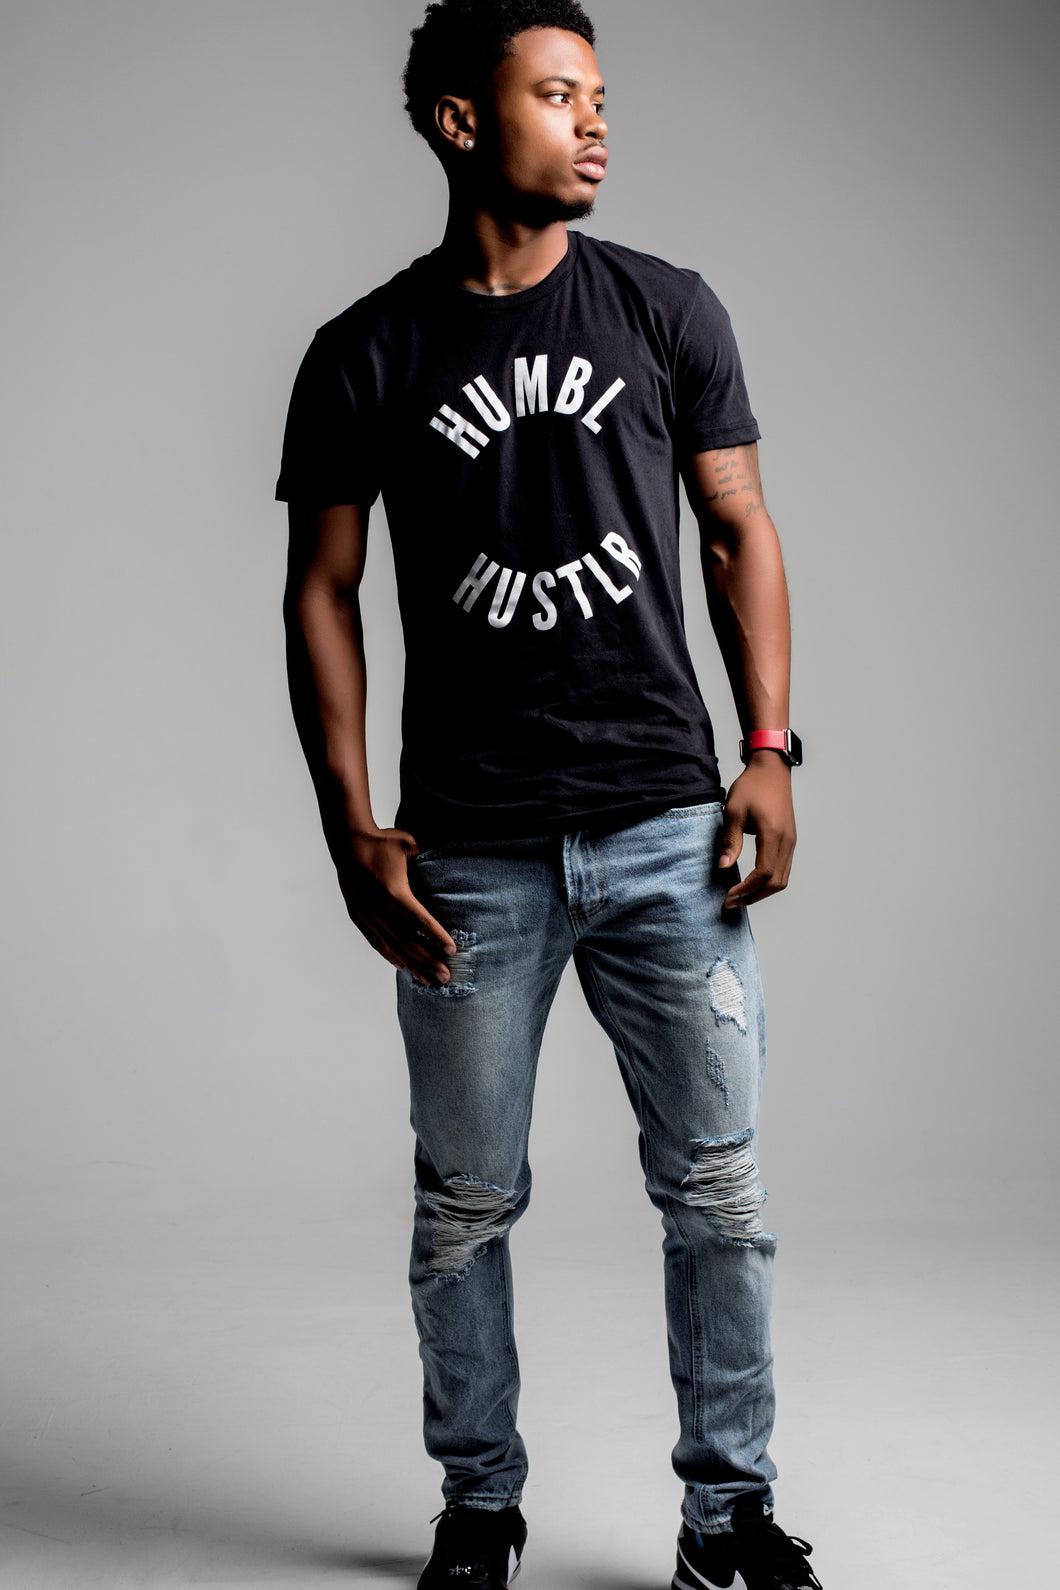 Black Hustlr T-Shirt